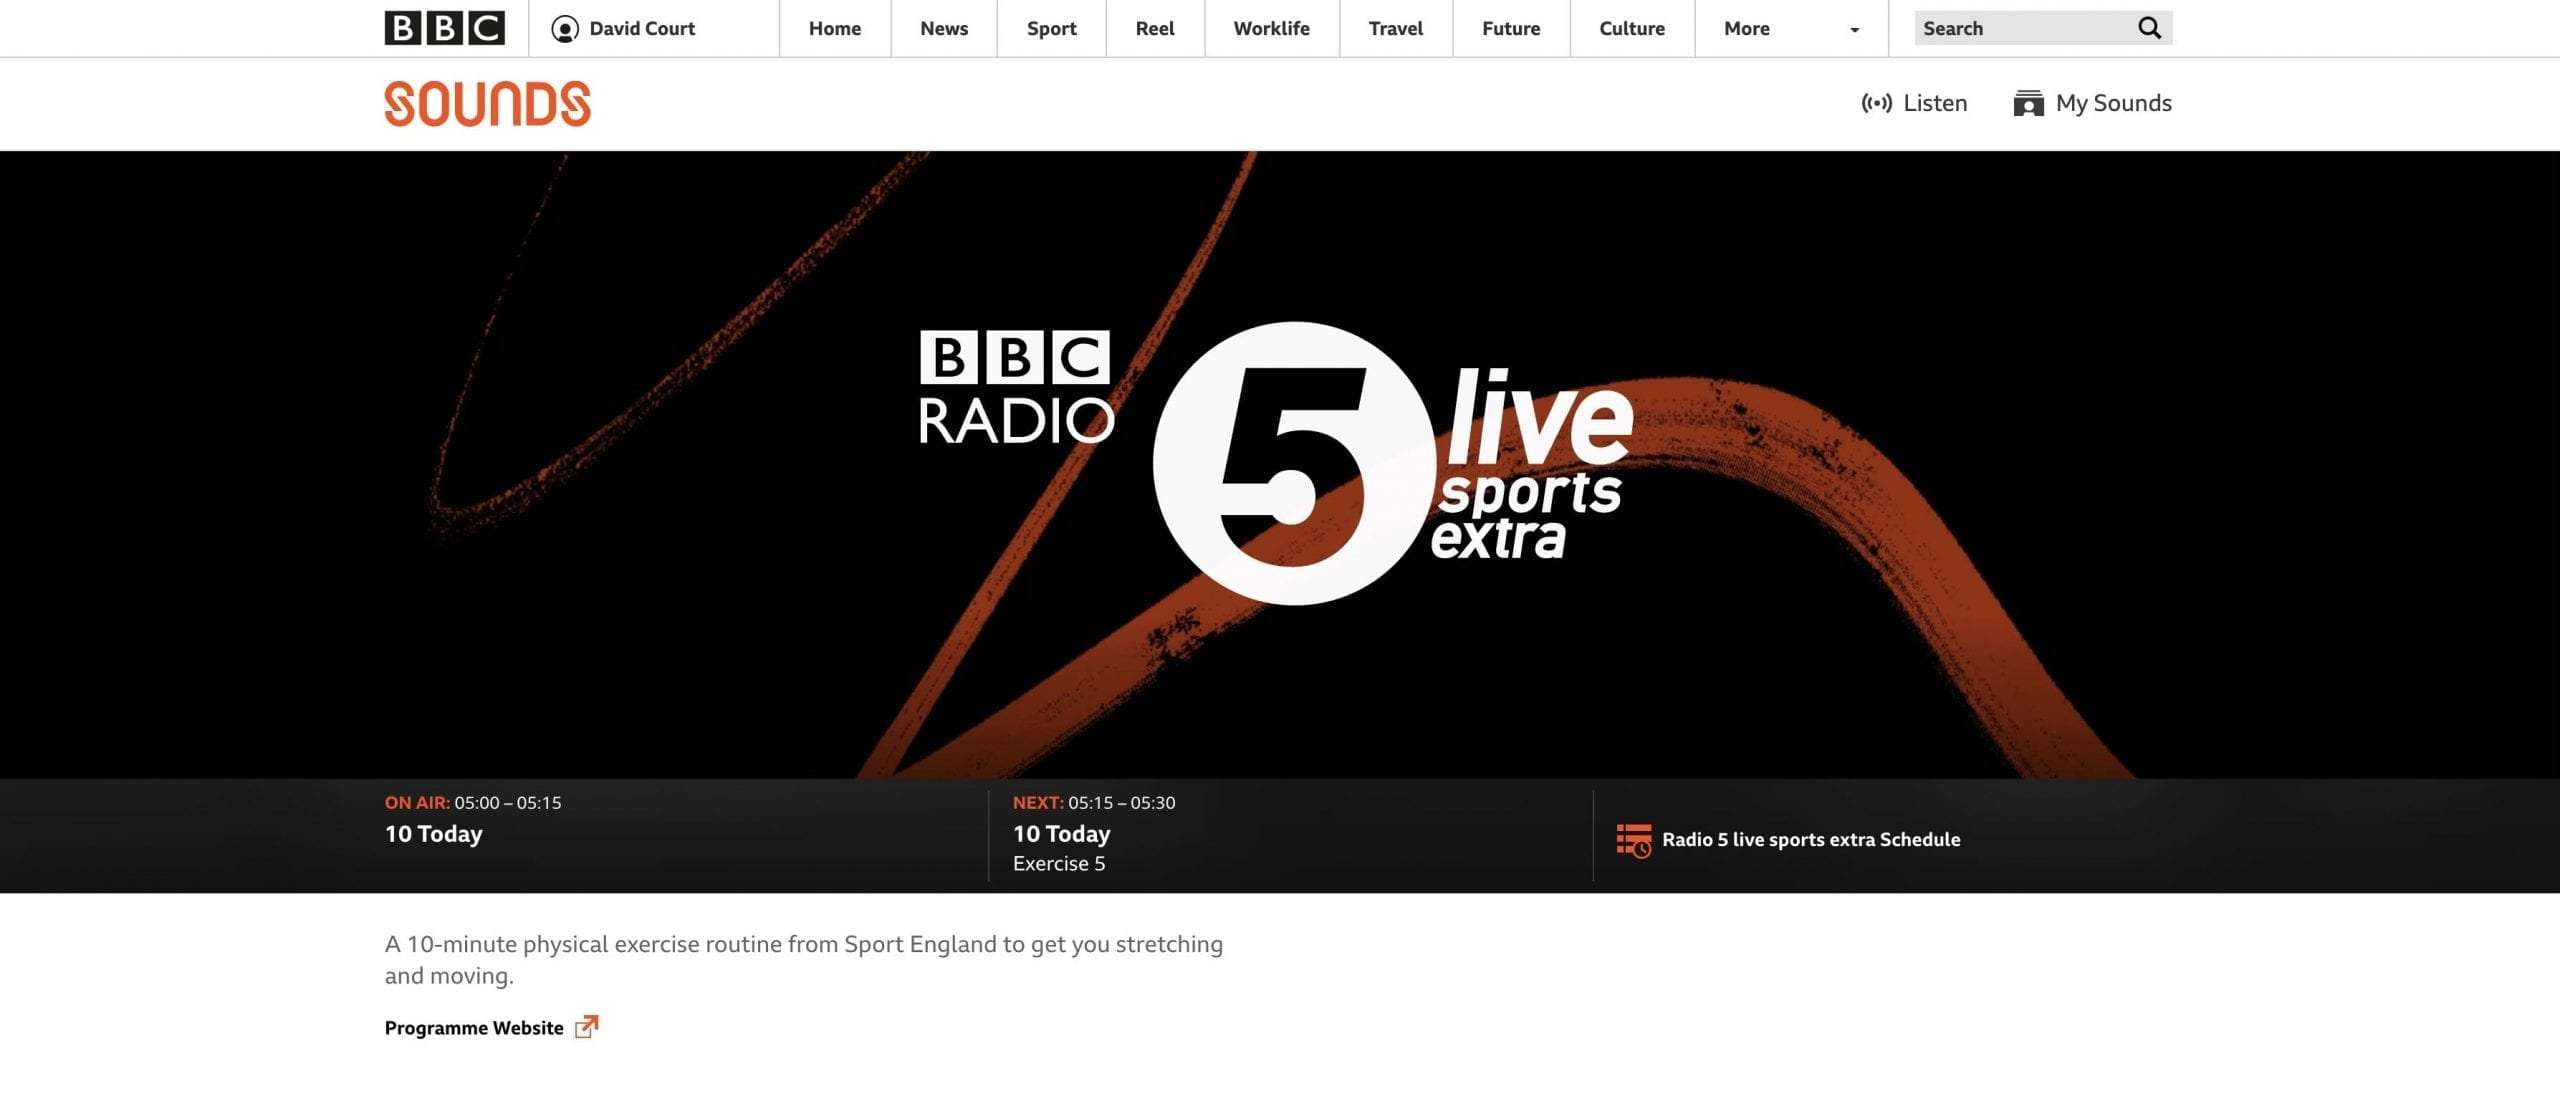 BBC Sounds not working with VPN